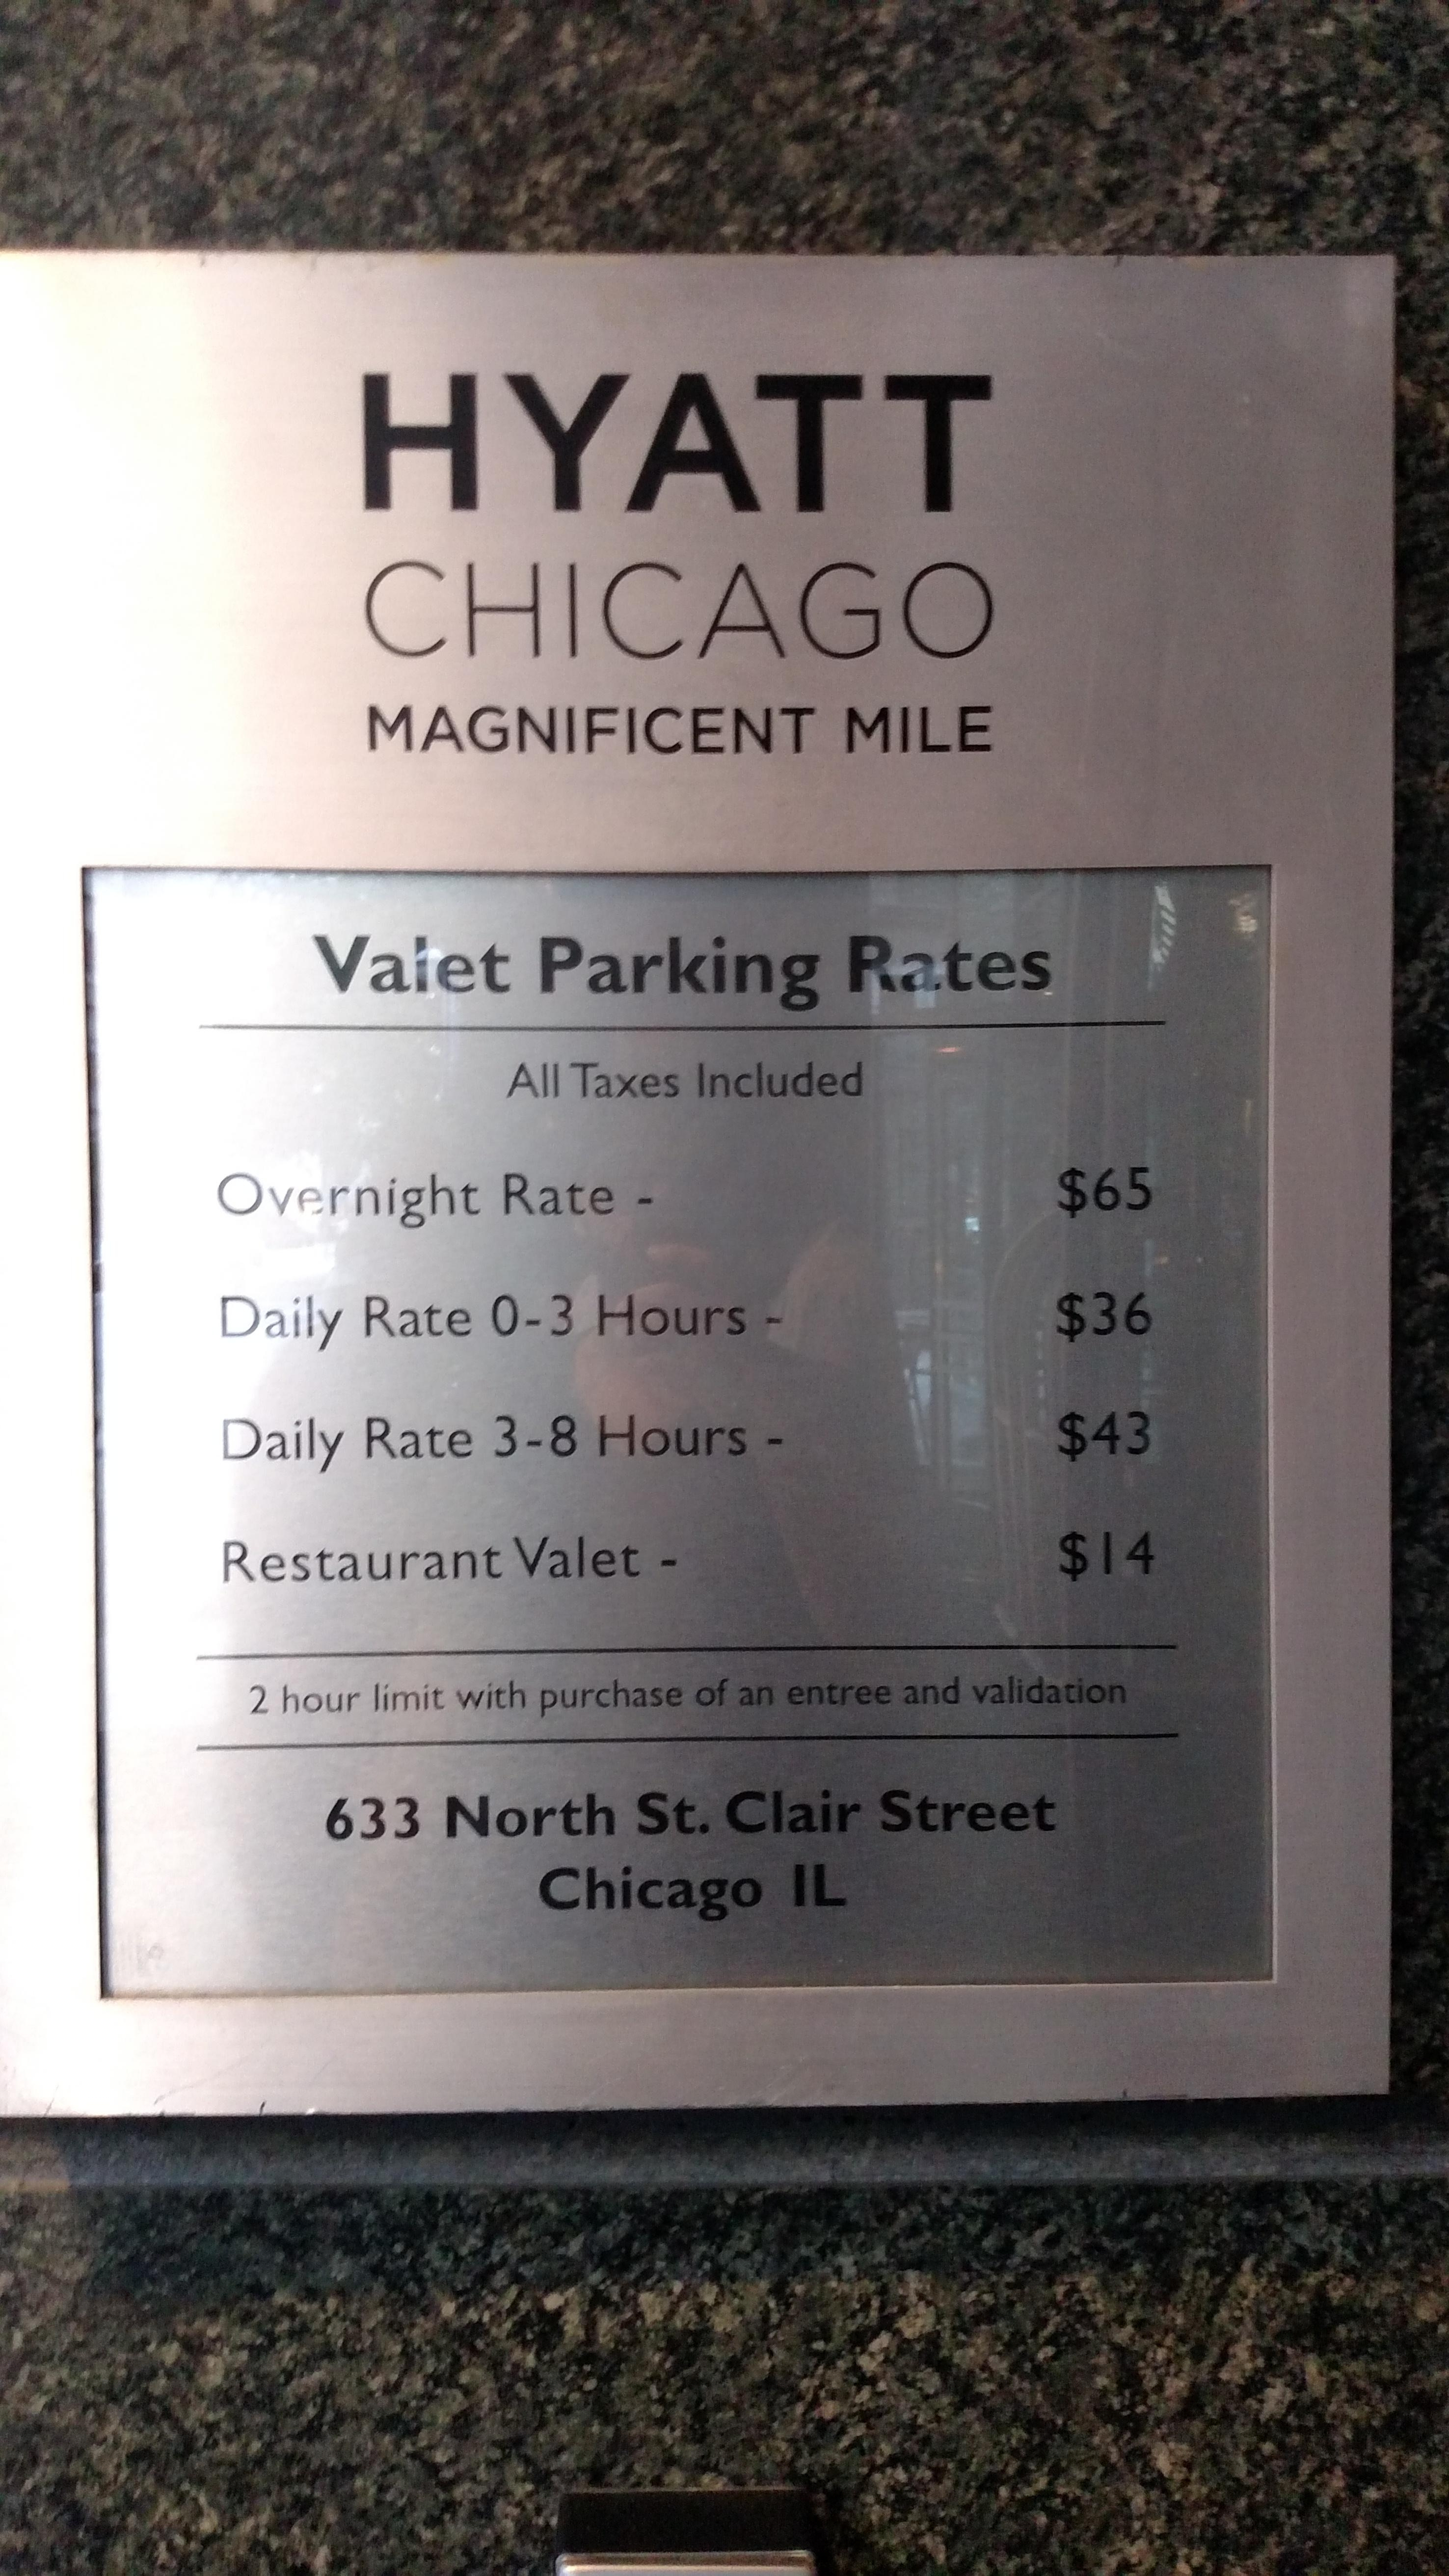 Hyatt Chicago Magnificent Mile Parking In Chicago ParkMe - Chicago map miracle mile